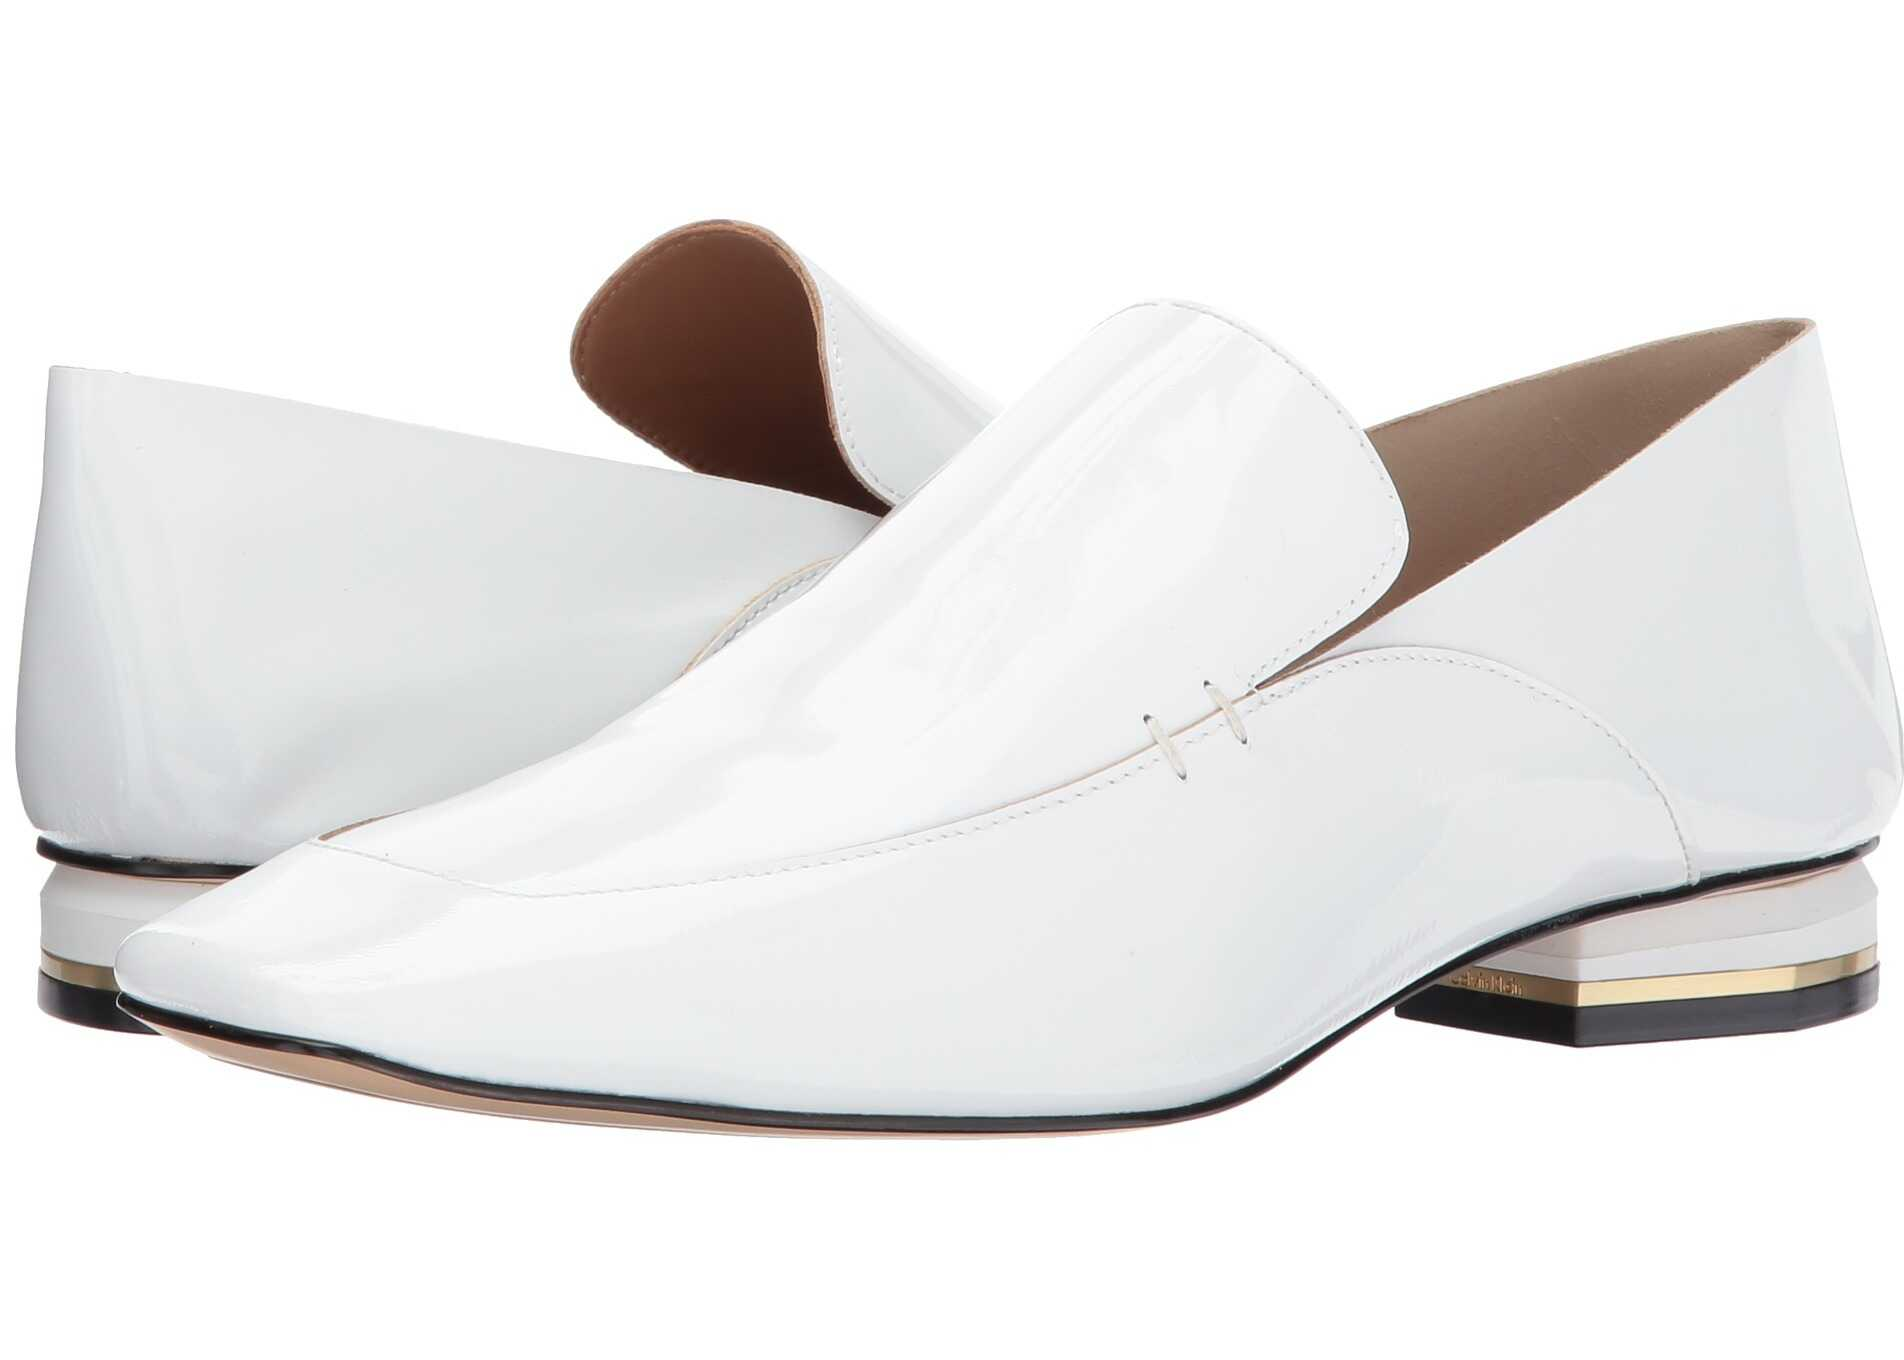 Calvin Klein Bia White Soft Patent/Soft Patent Unlined